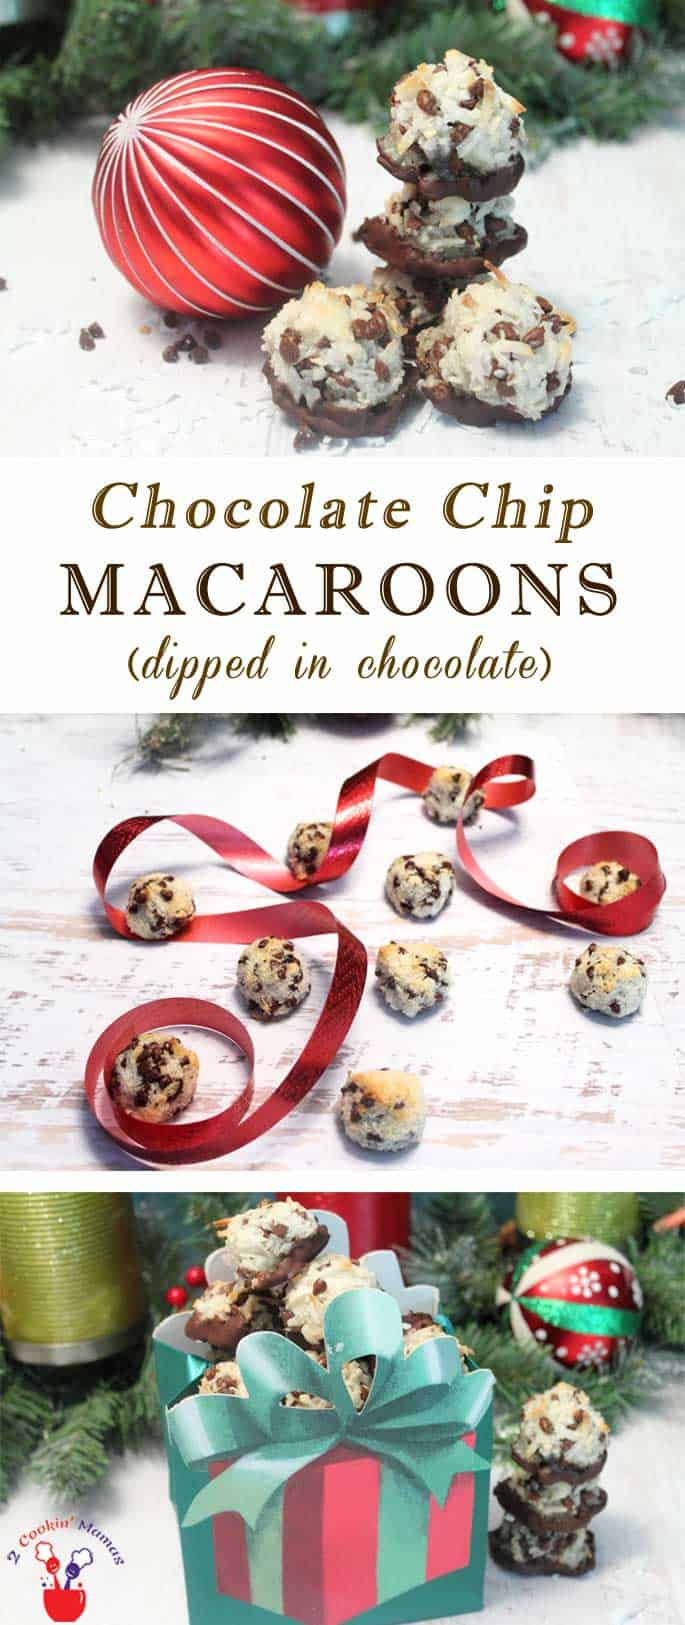 Coconuty Chocolate Chip Macaroons are simple to make, deliciously chewy & gluten-free! And you just have to dip them in chocolate! #cookies #coconut #macaroons #chocolatechips #recipe